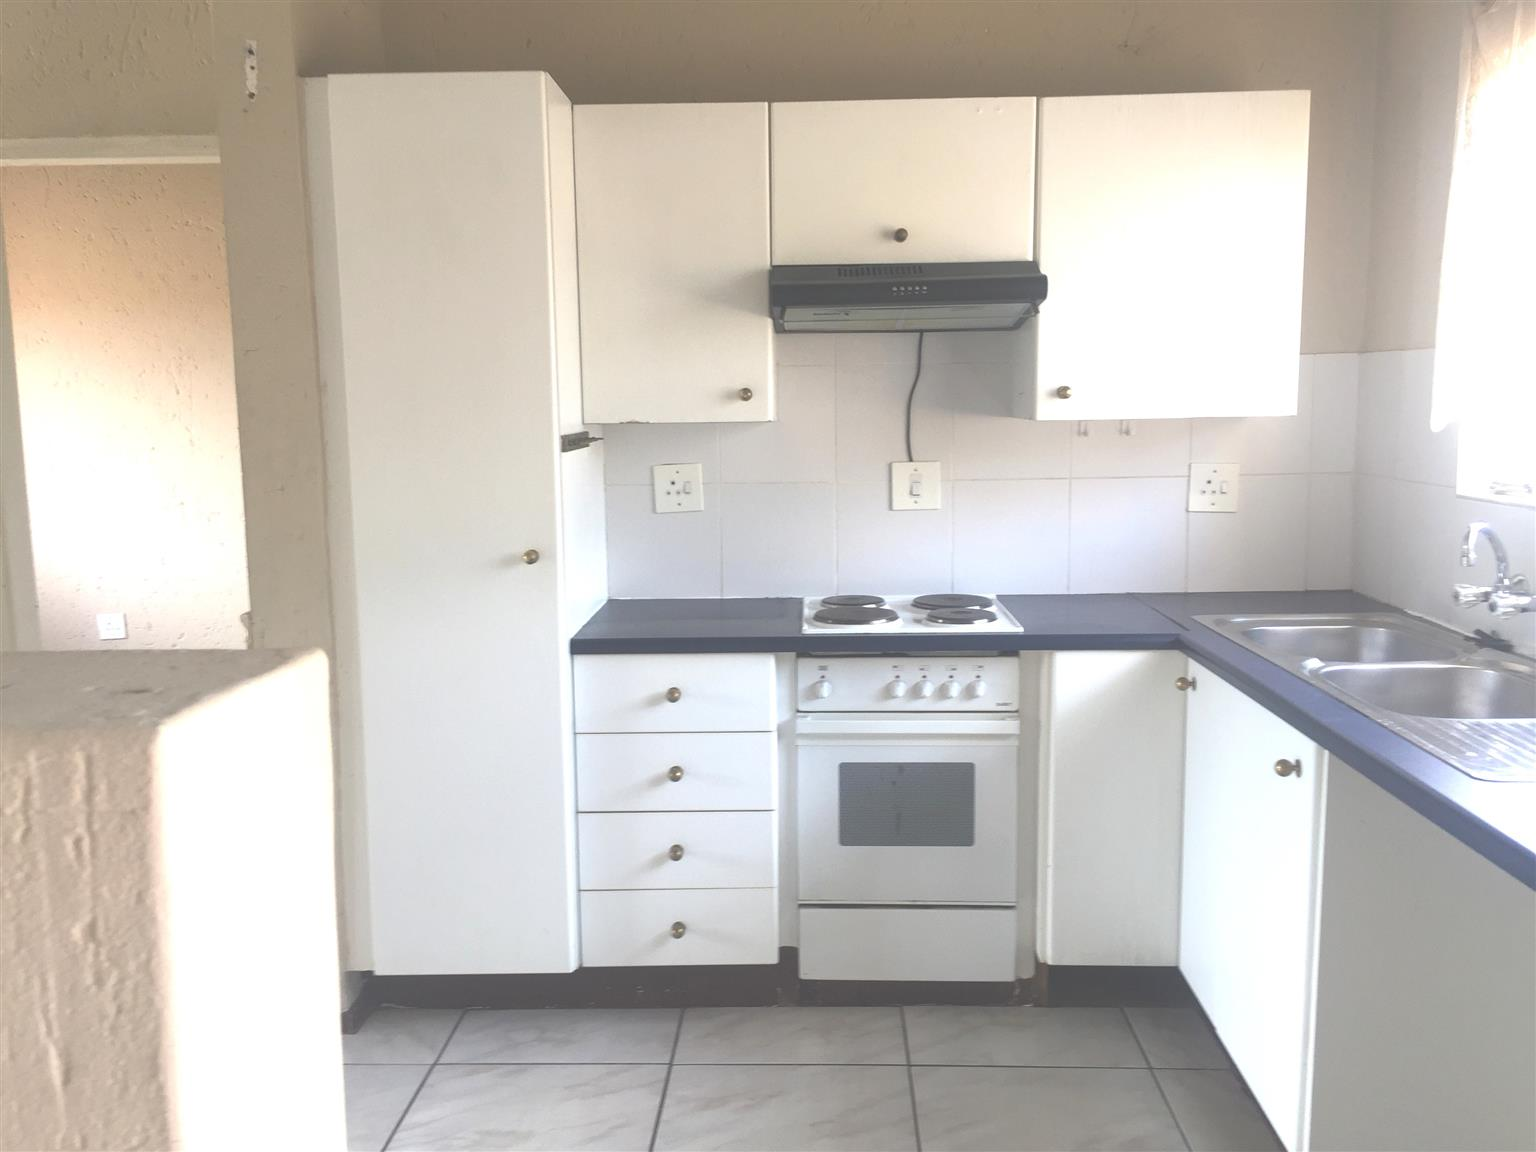 Upstairs, 1 bed 1 bath in Grand Rapids NorthRiding